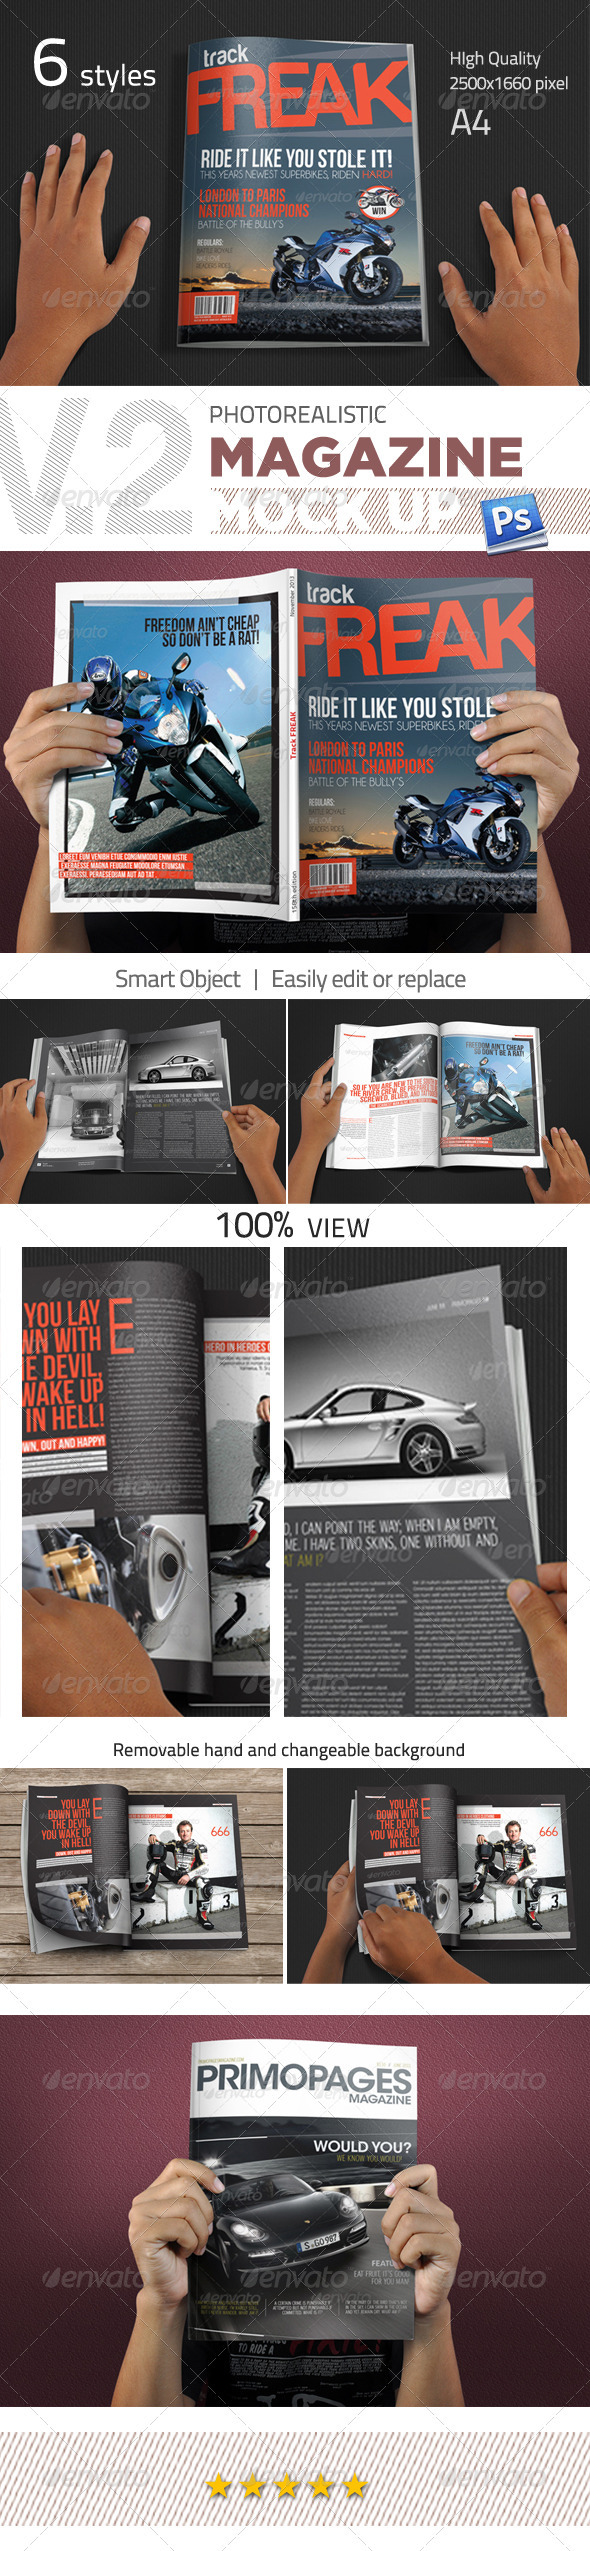 GraphicRiver Photorealistic Magazine Mockup V.2 3165410